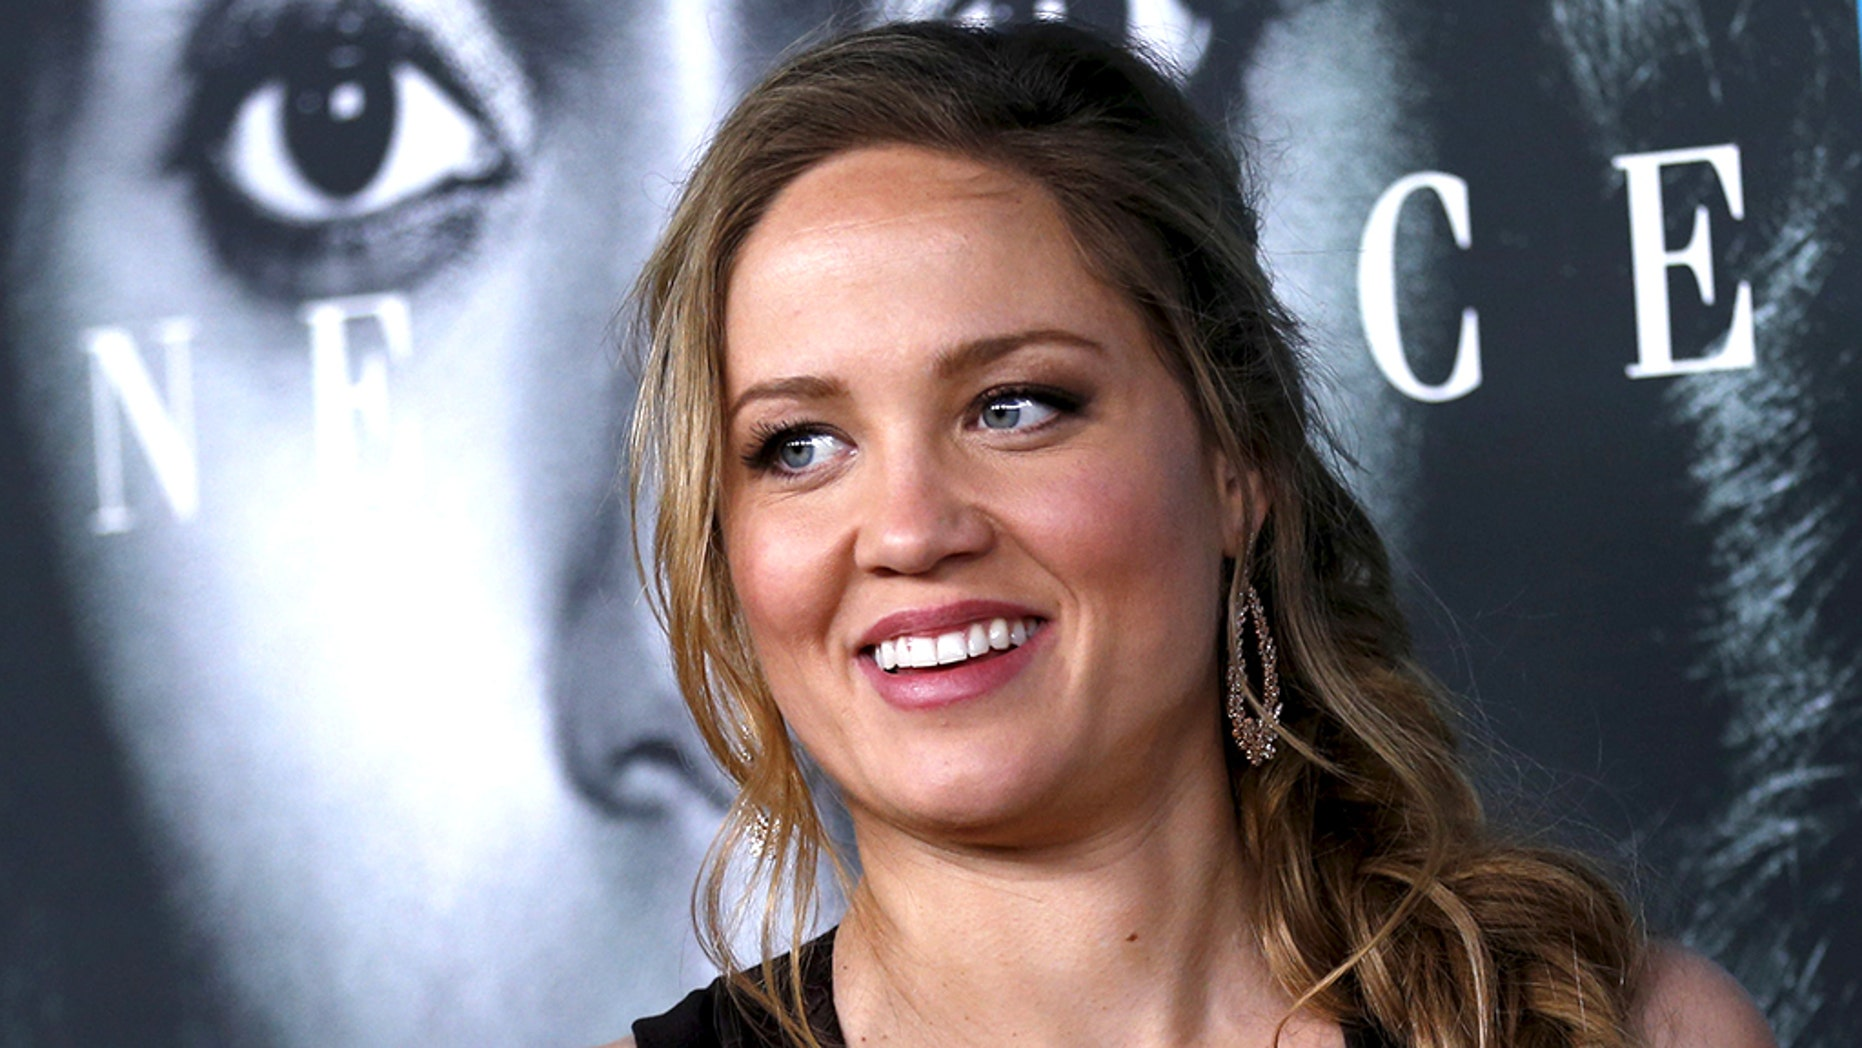 Parenthood Star Erika Christensen Defends Scientology Amid